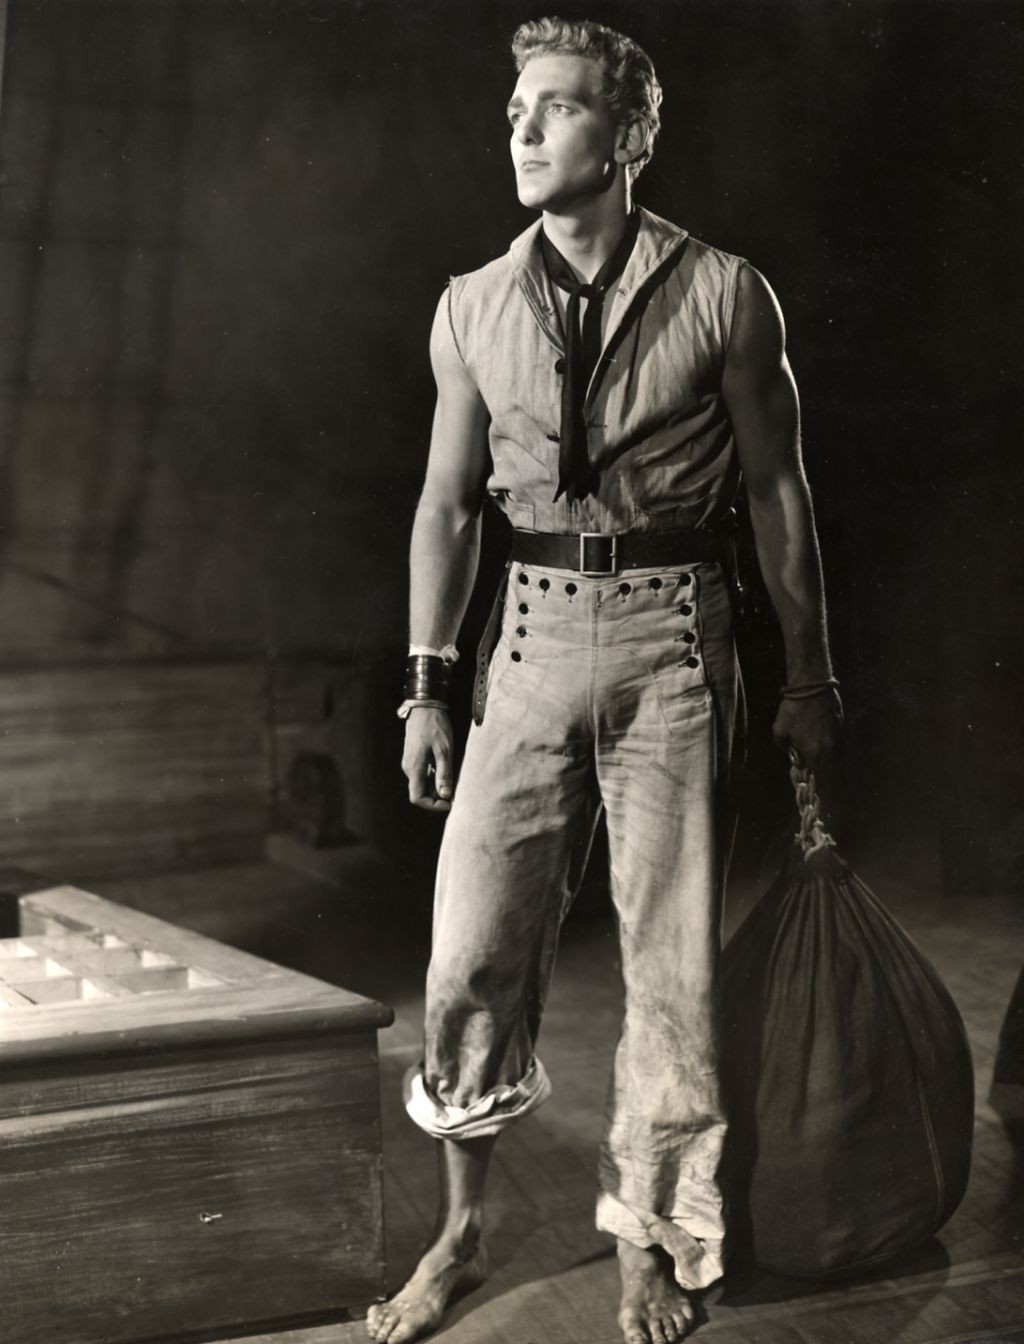 billy budd essay writework english actor charles nolte as the title character in the broadway production of billy budd